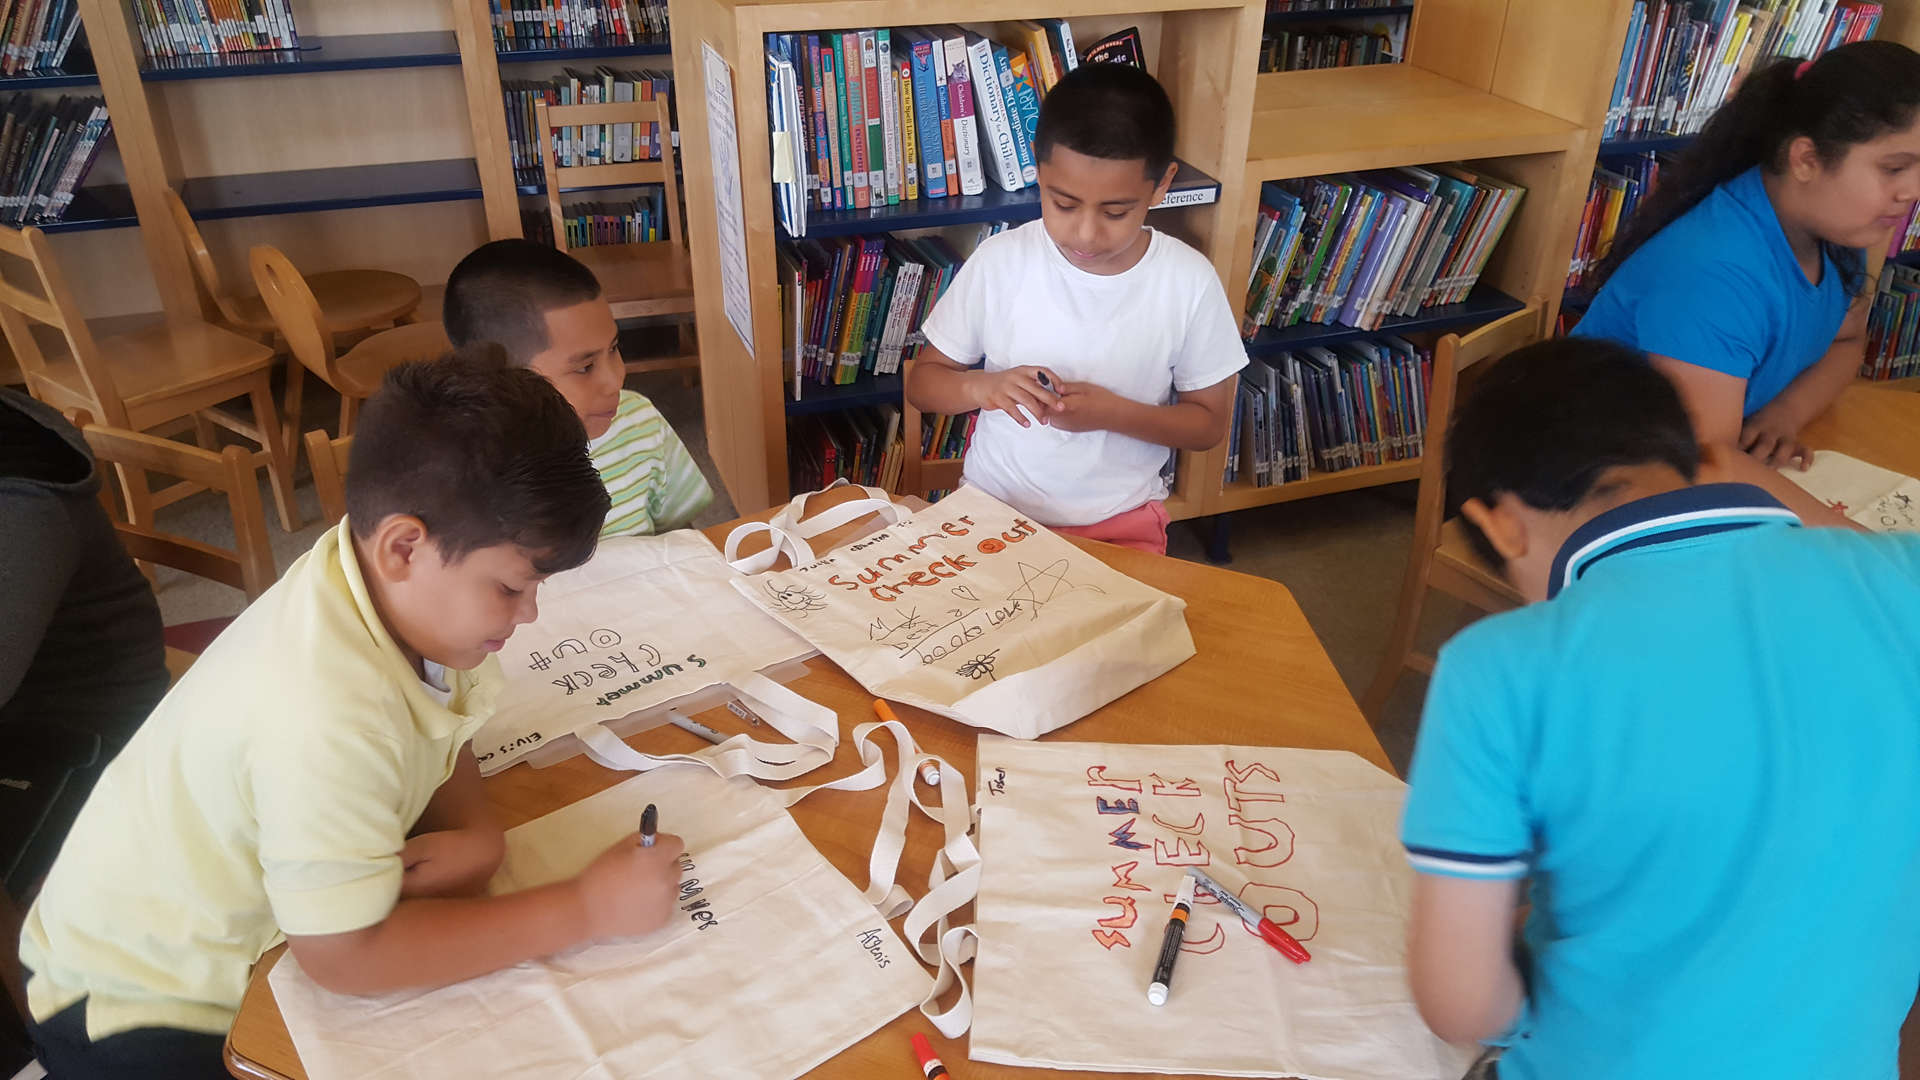 four students decorating tote bags in the library